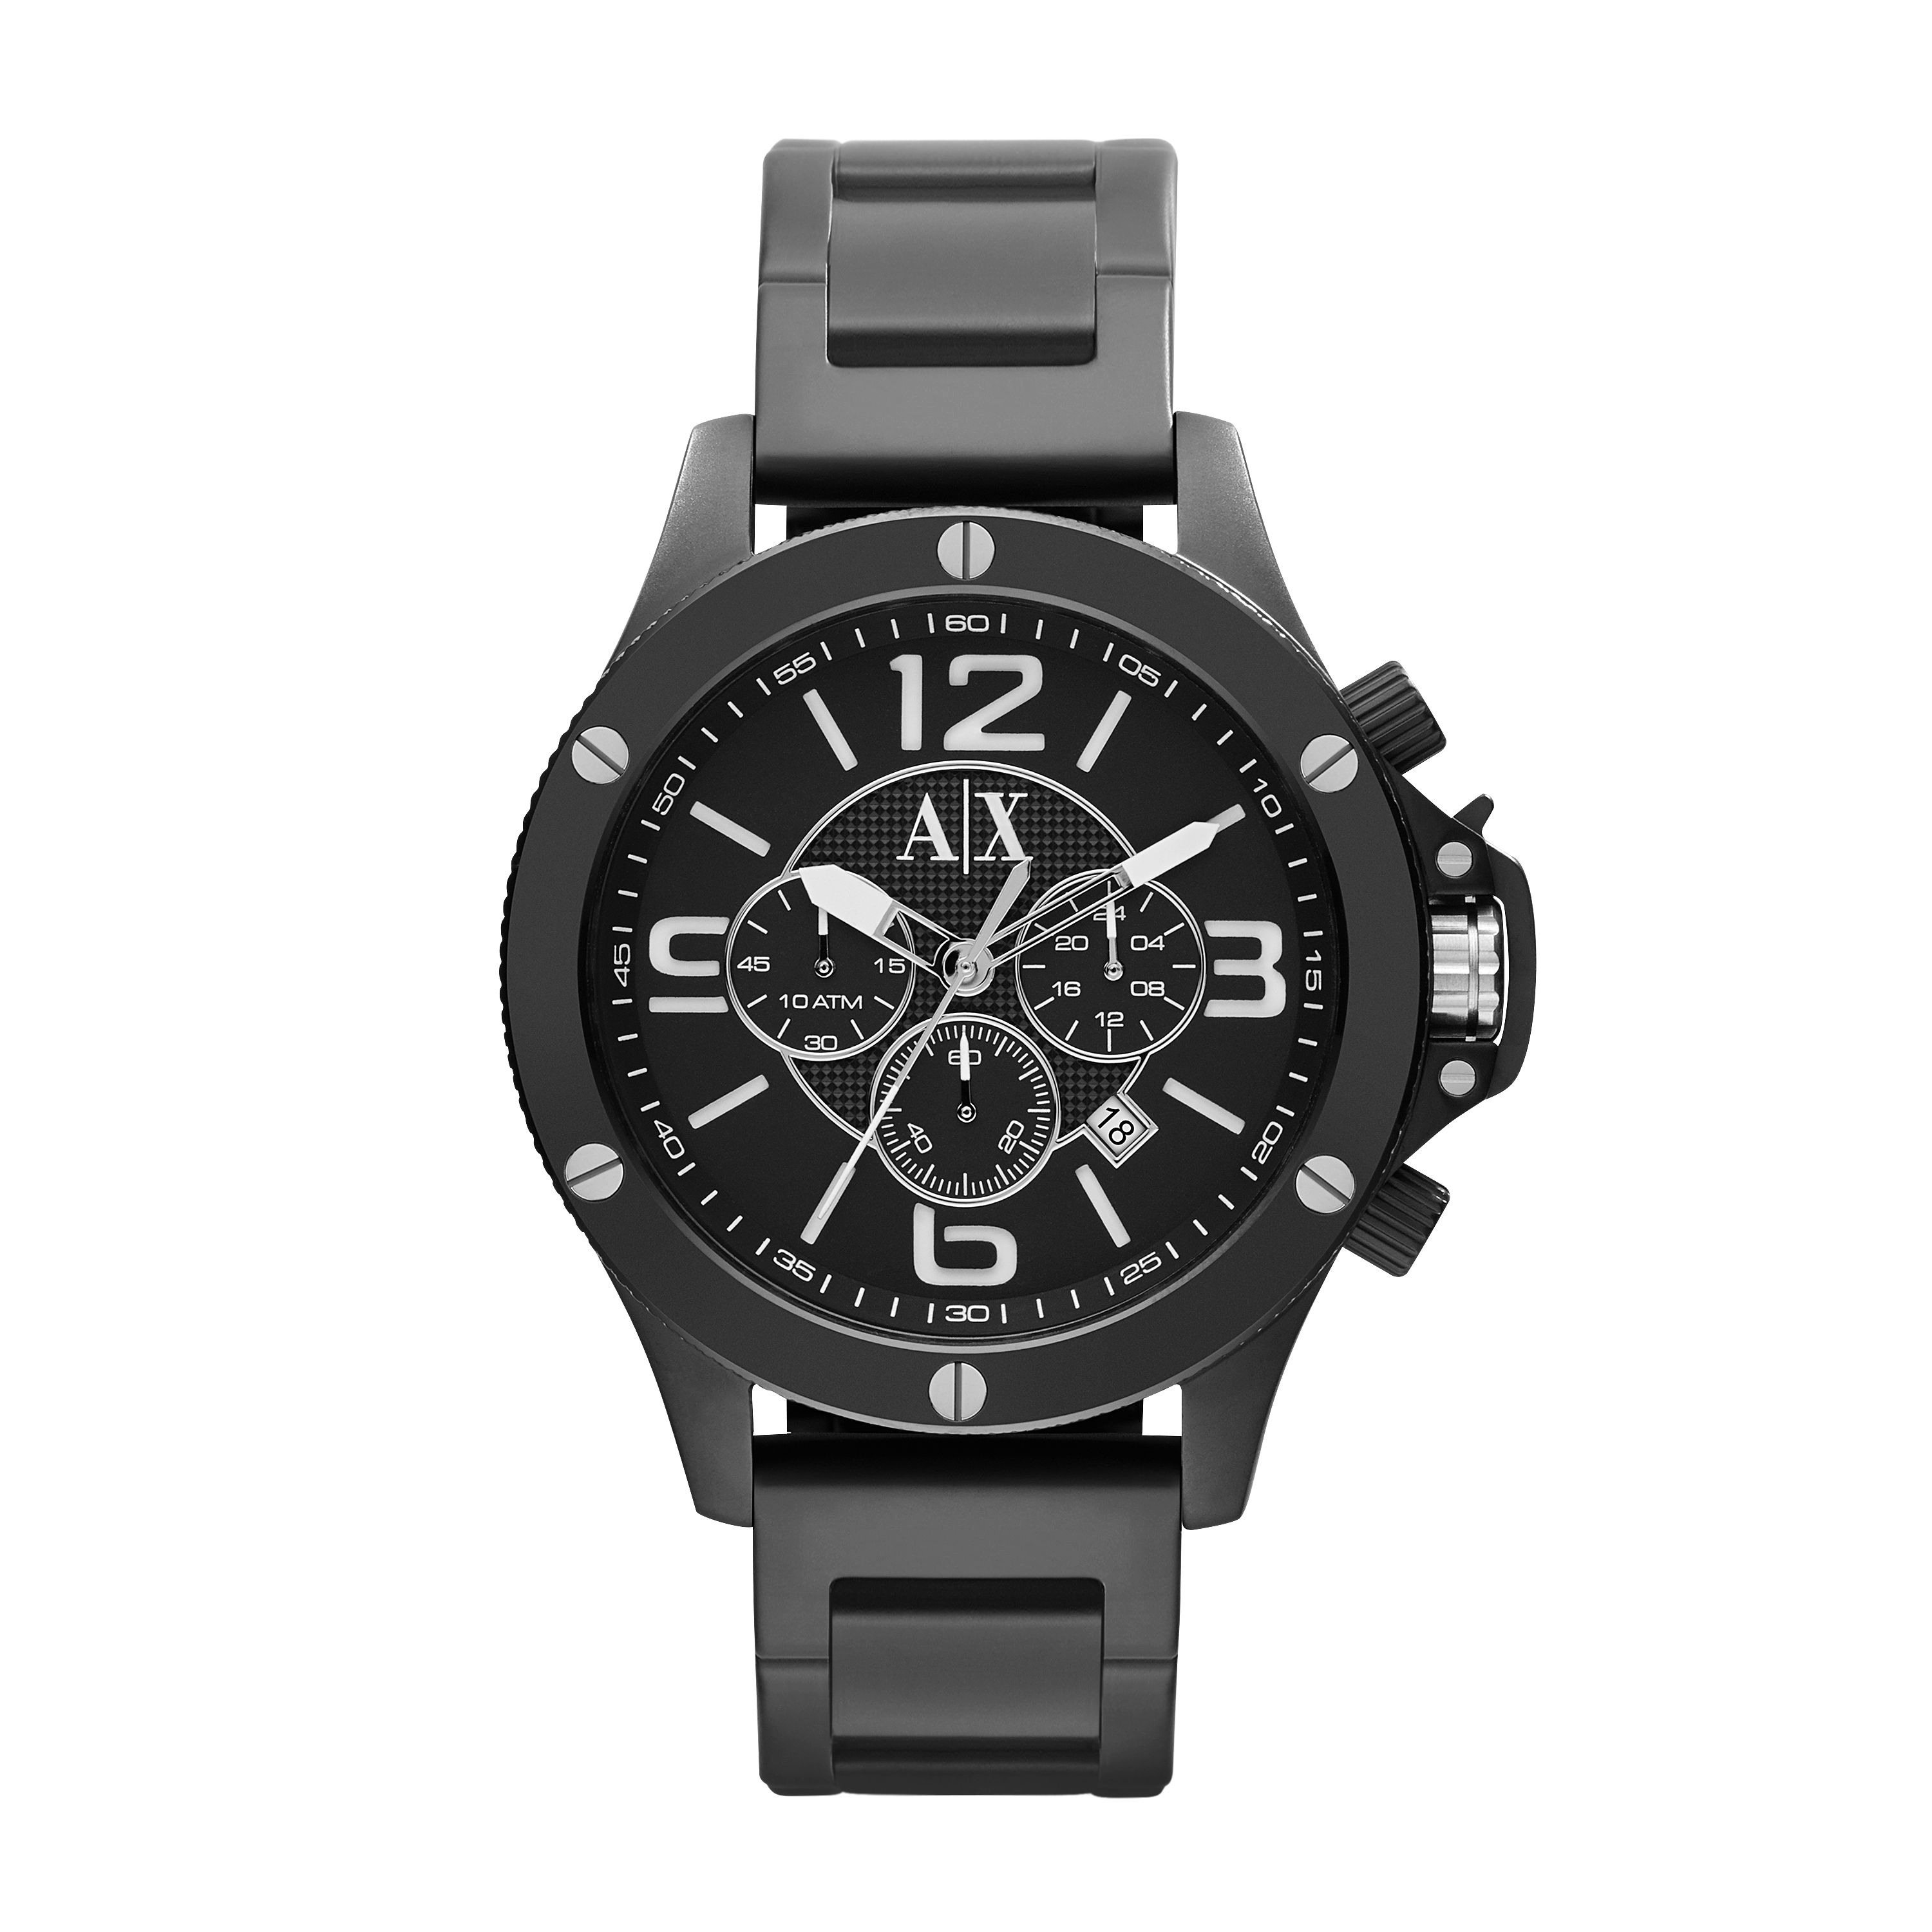 AX1503 STREET black stainless steel mens watch